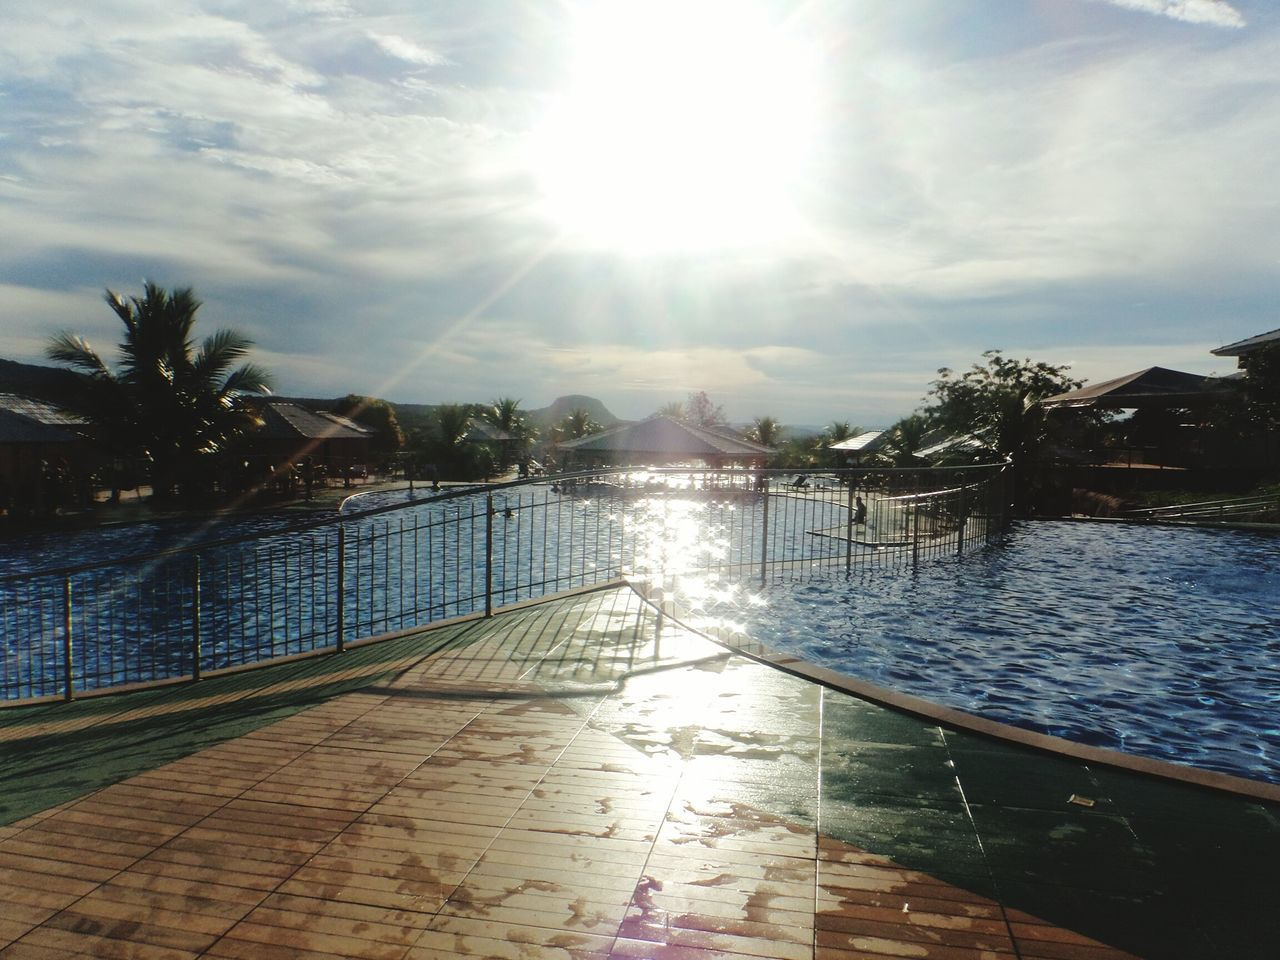 water, sky, sunlight, swimming pool, scenics, cloud - sky, tranquility, tranquil scene, sea, beauty in nature, nature, outdoors, palm tree, no people, tree, sun, day, mountain, architecture